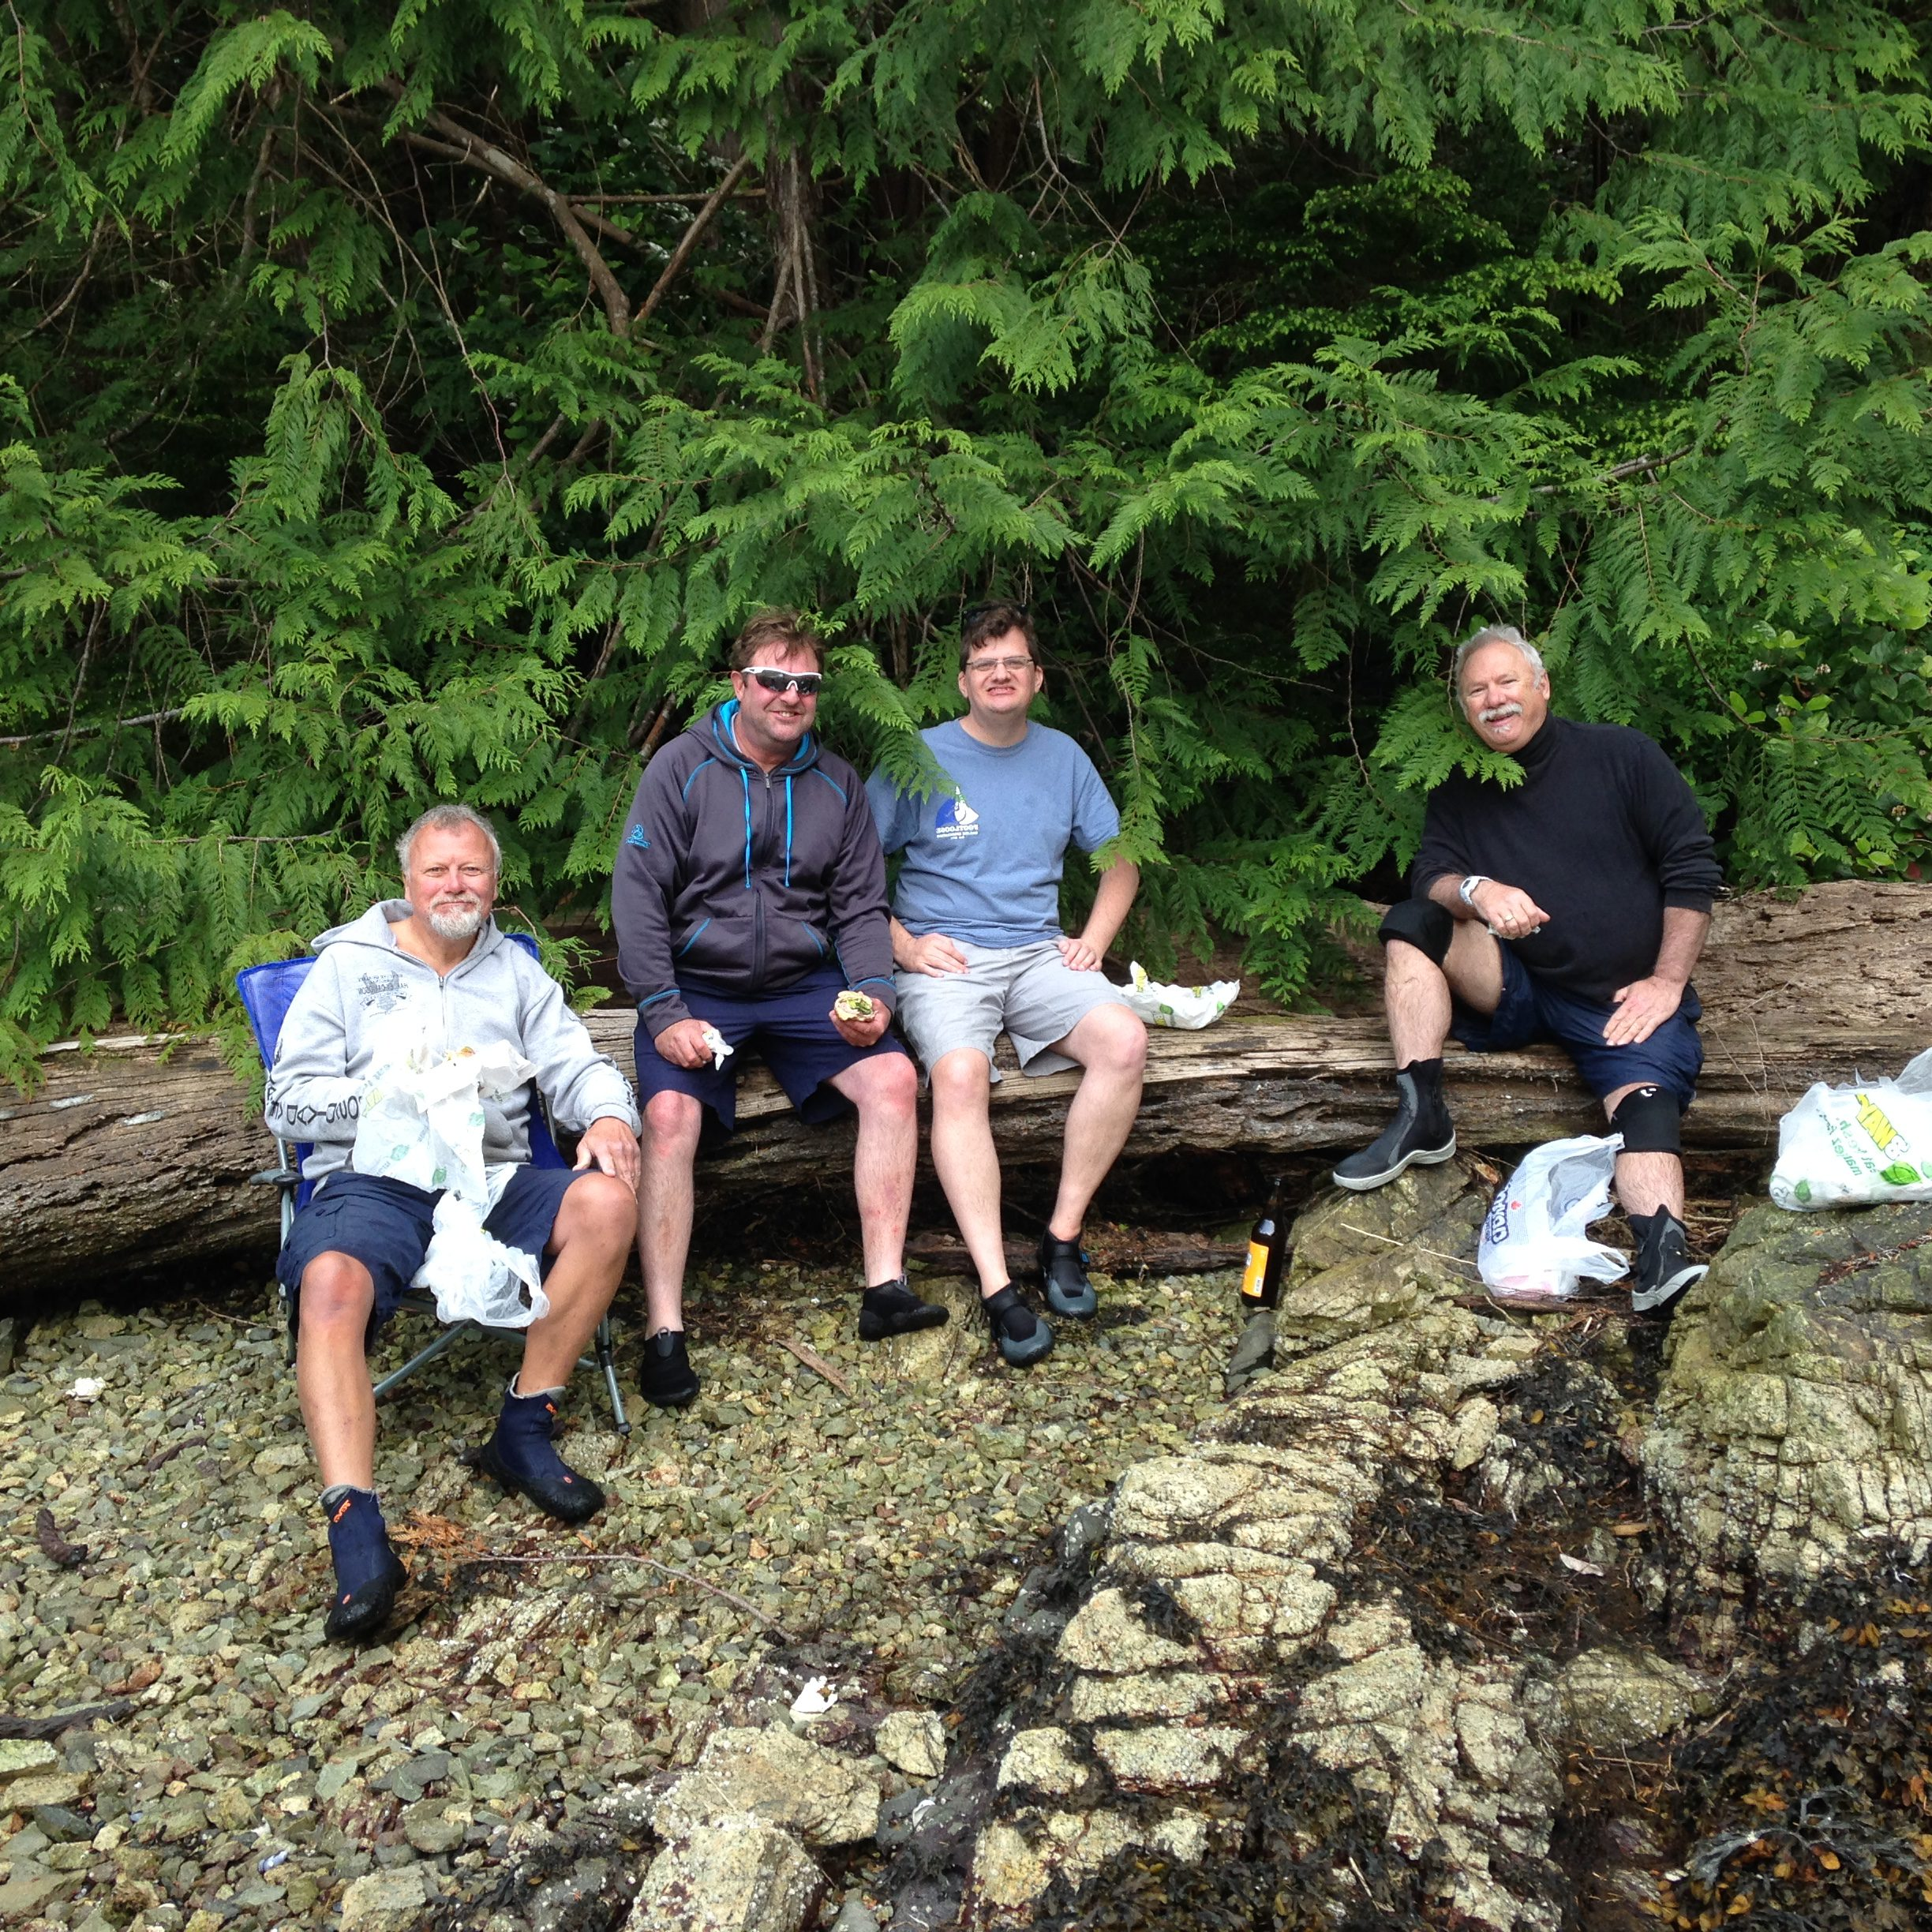 Thomas, Ken, Robert and Kevin on the late lunch break at the Sechelt Inlets Marine Provincial Park